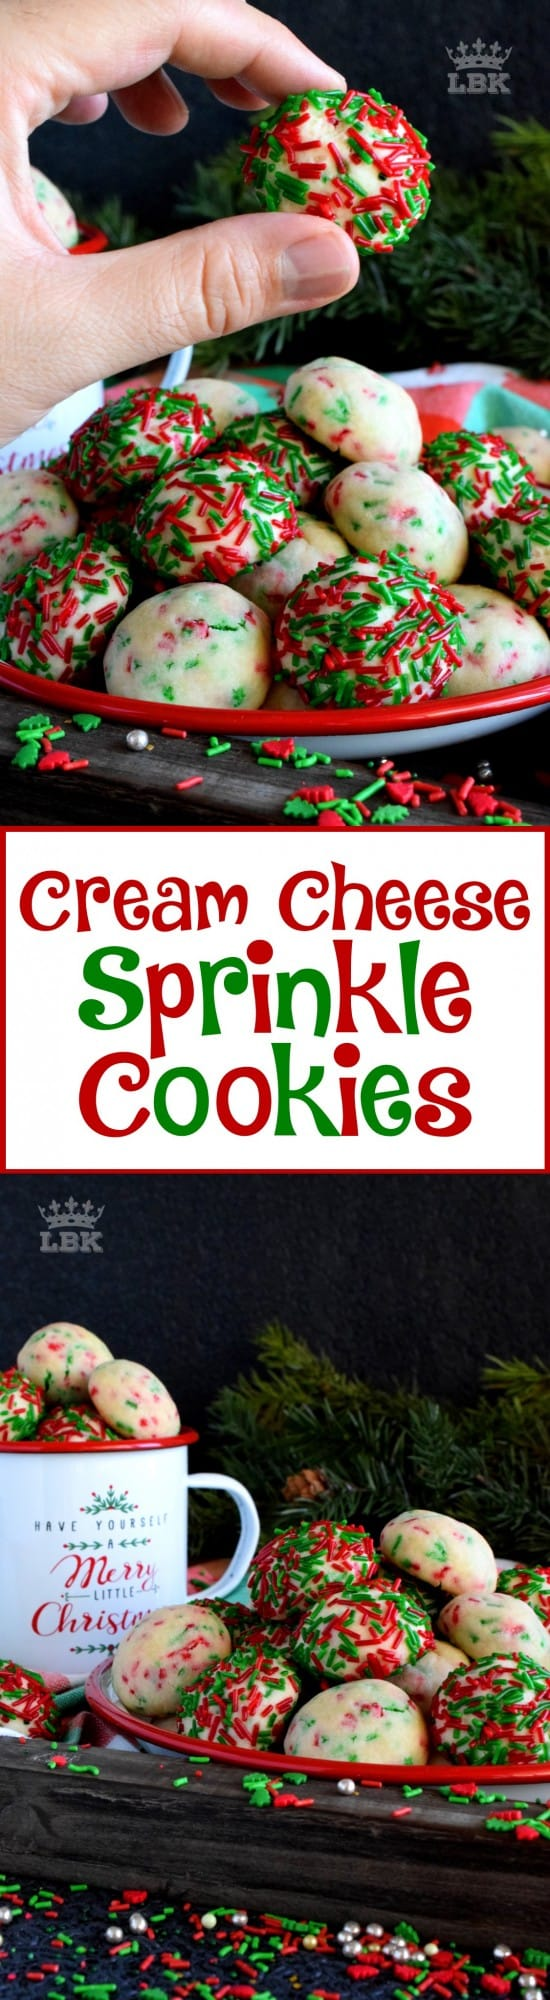 Cream Cheese Sprinkle Cookies - Who doesn't love cheerful and festive Christmas cookies with lots of sprinkles? Made with cream cheese, these taste as great as they look! #sprinkles #cookies #baking #christmas #holiday #balls